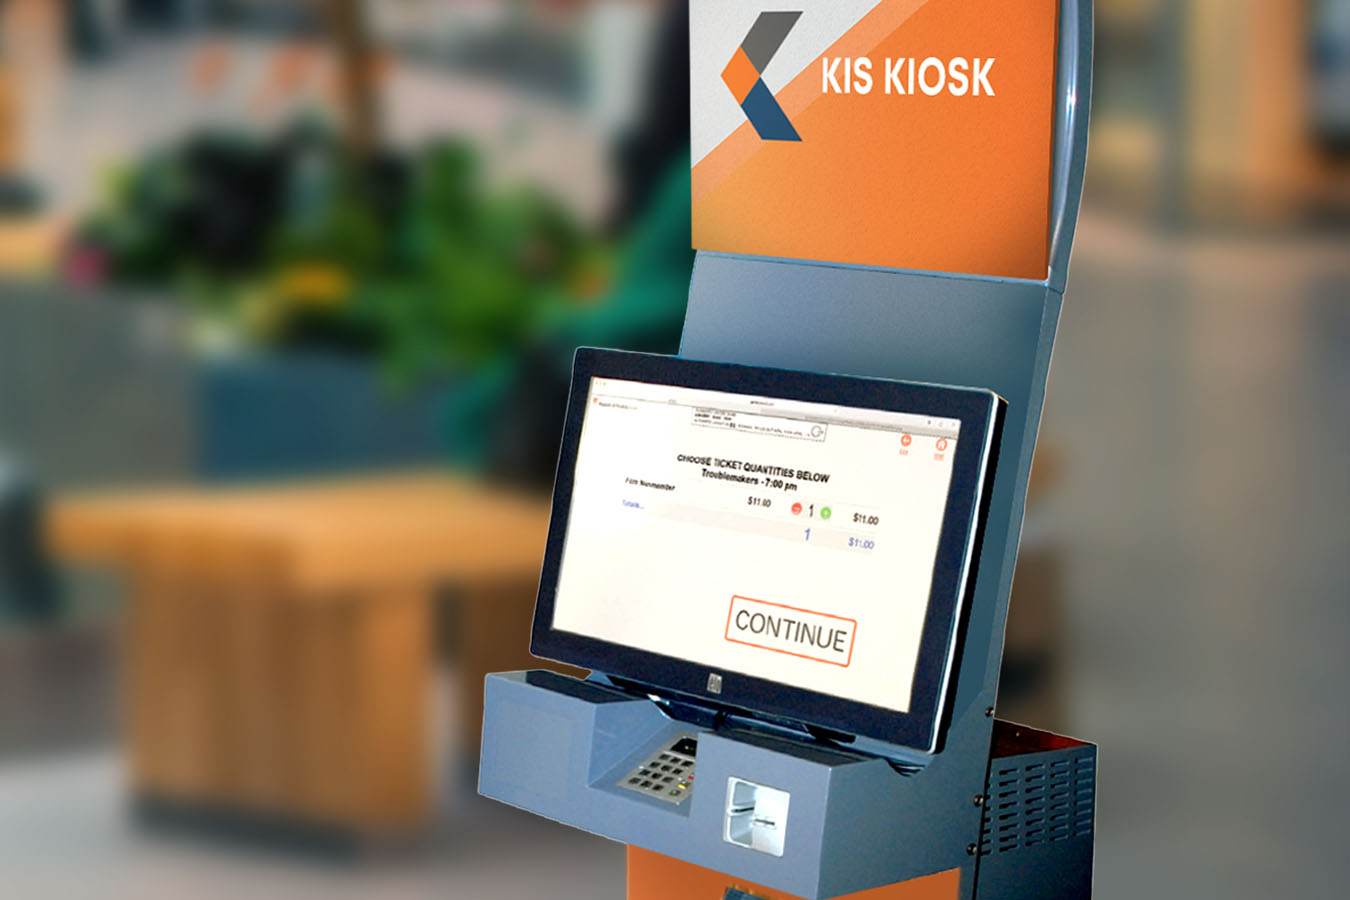 KIS Kiosk hardware and ticketing solutions